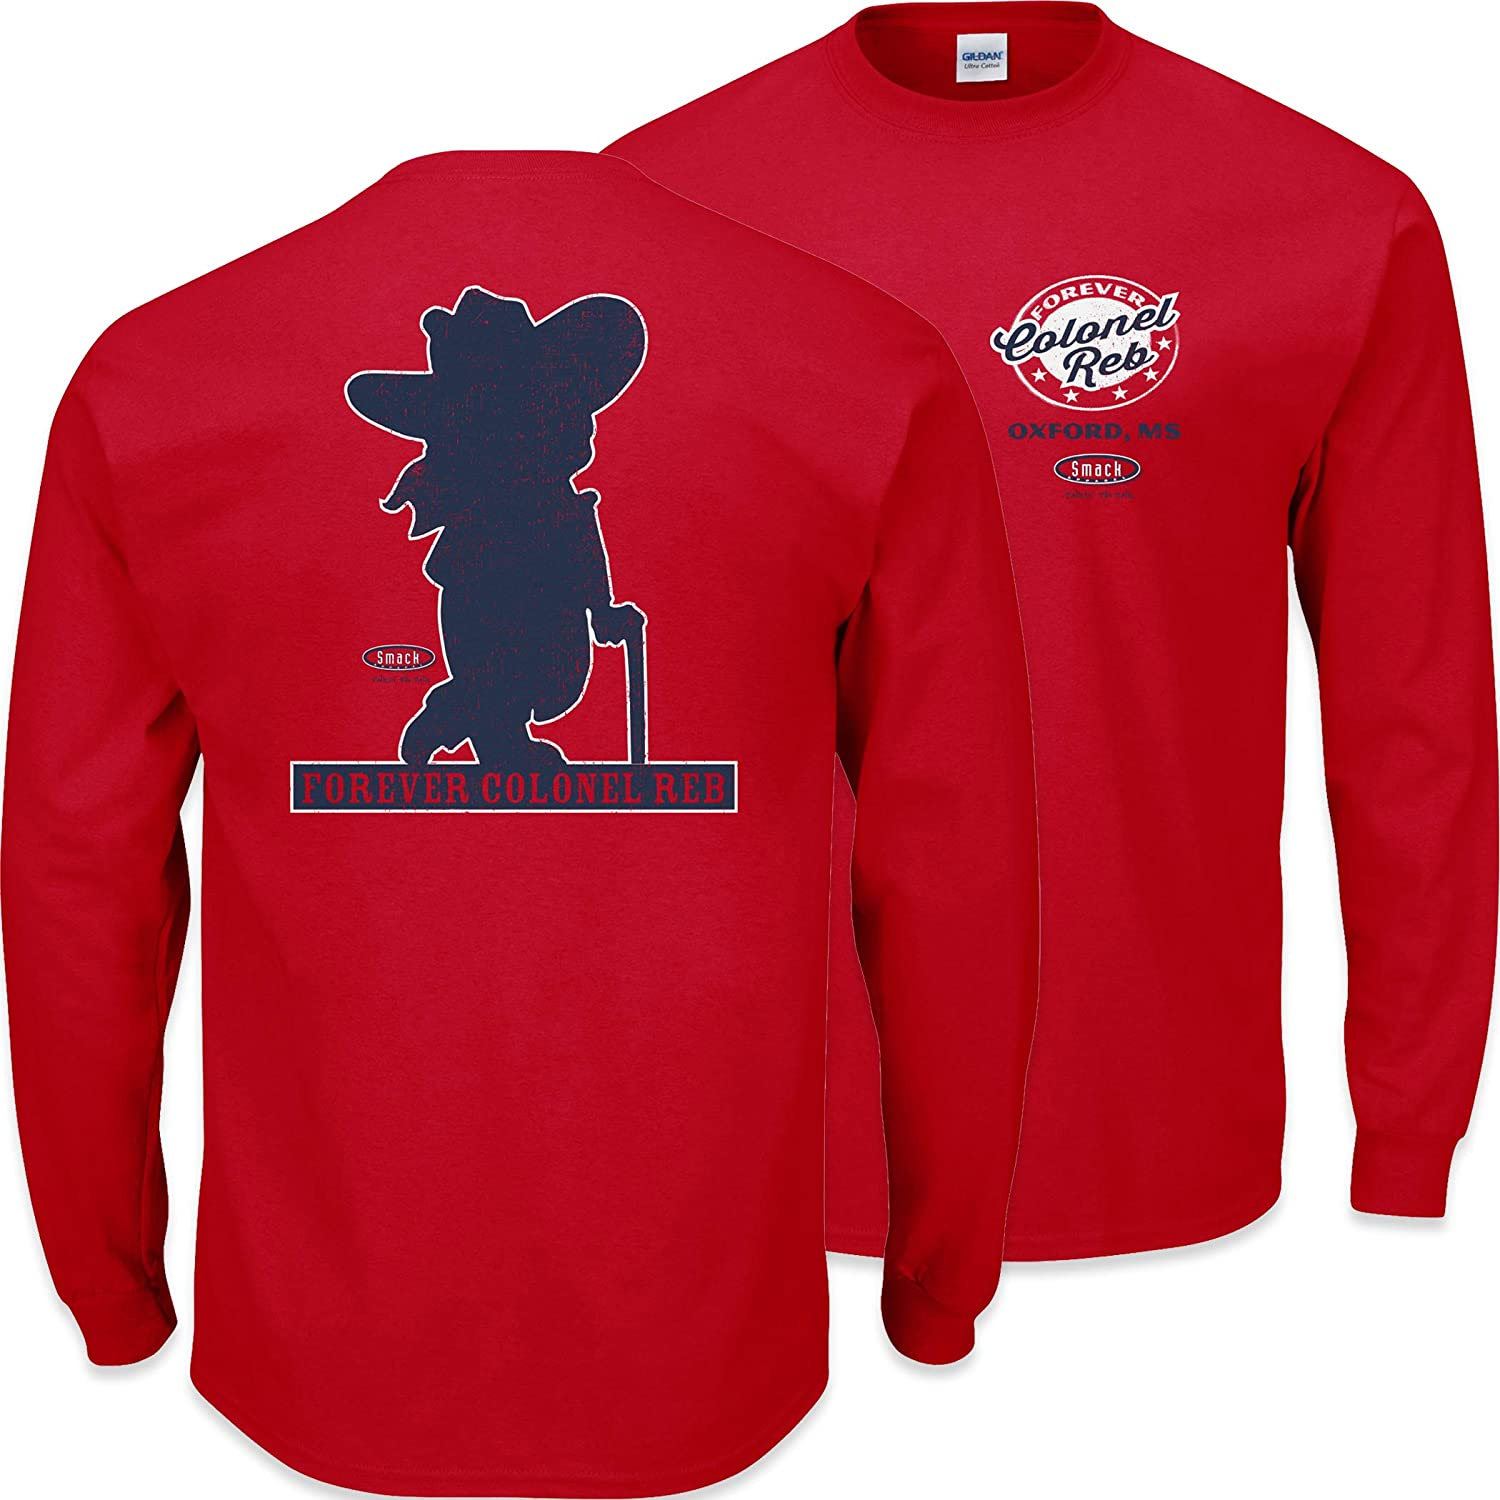 Ole Miss Football Fans Sm-5X Forever Colonel Reb T Shirt or Sticker